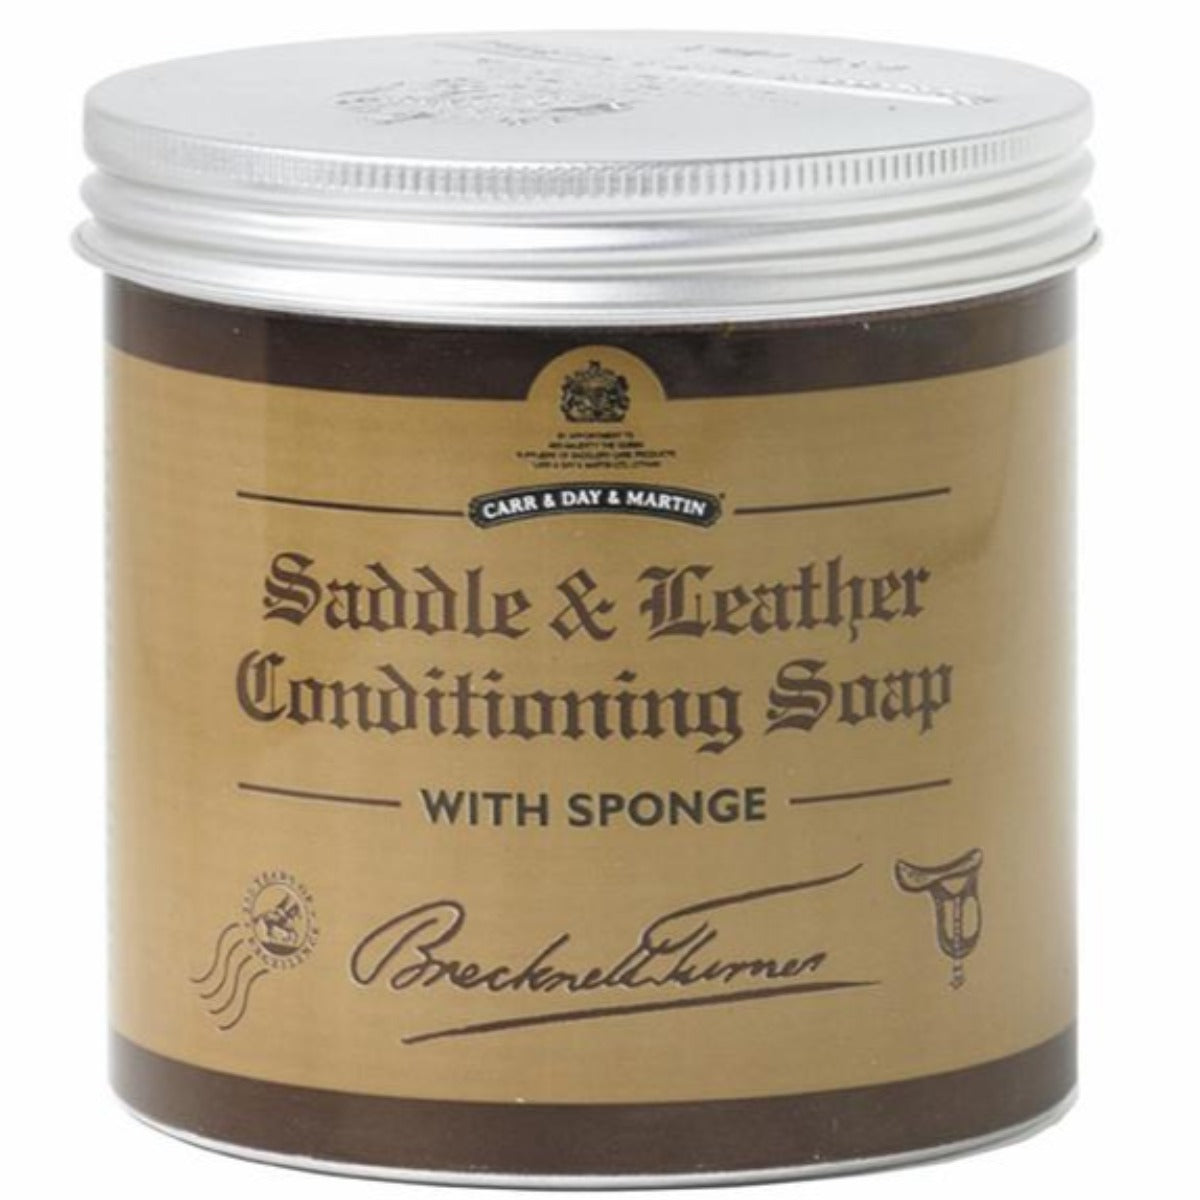 Carr & Day & Martin Horse Brecknell Turner Saddle Soap